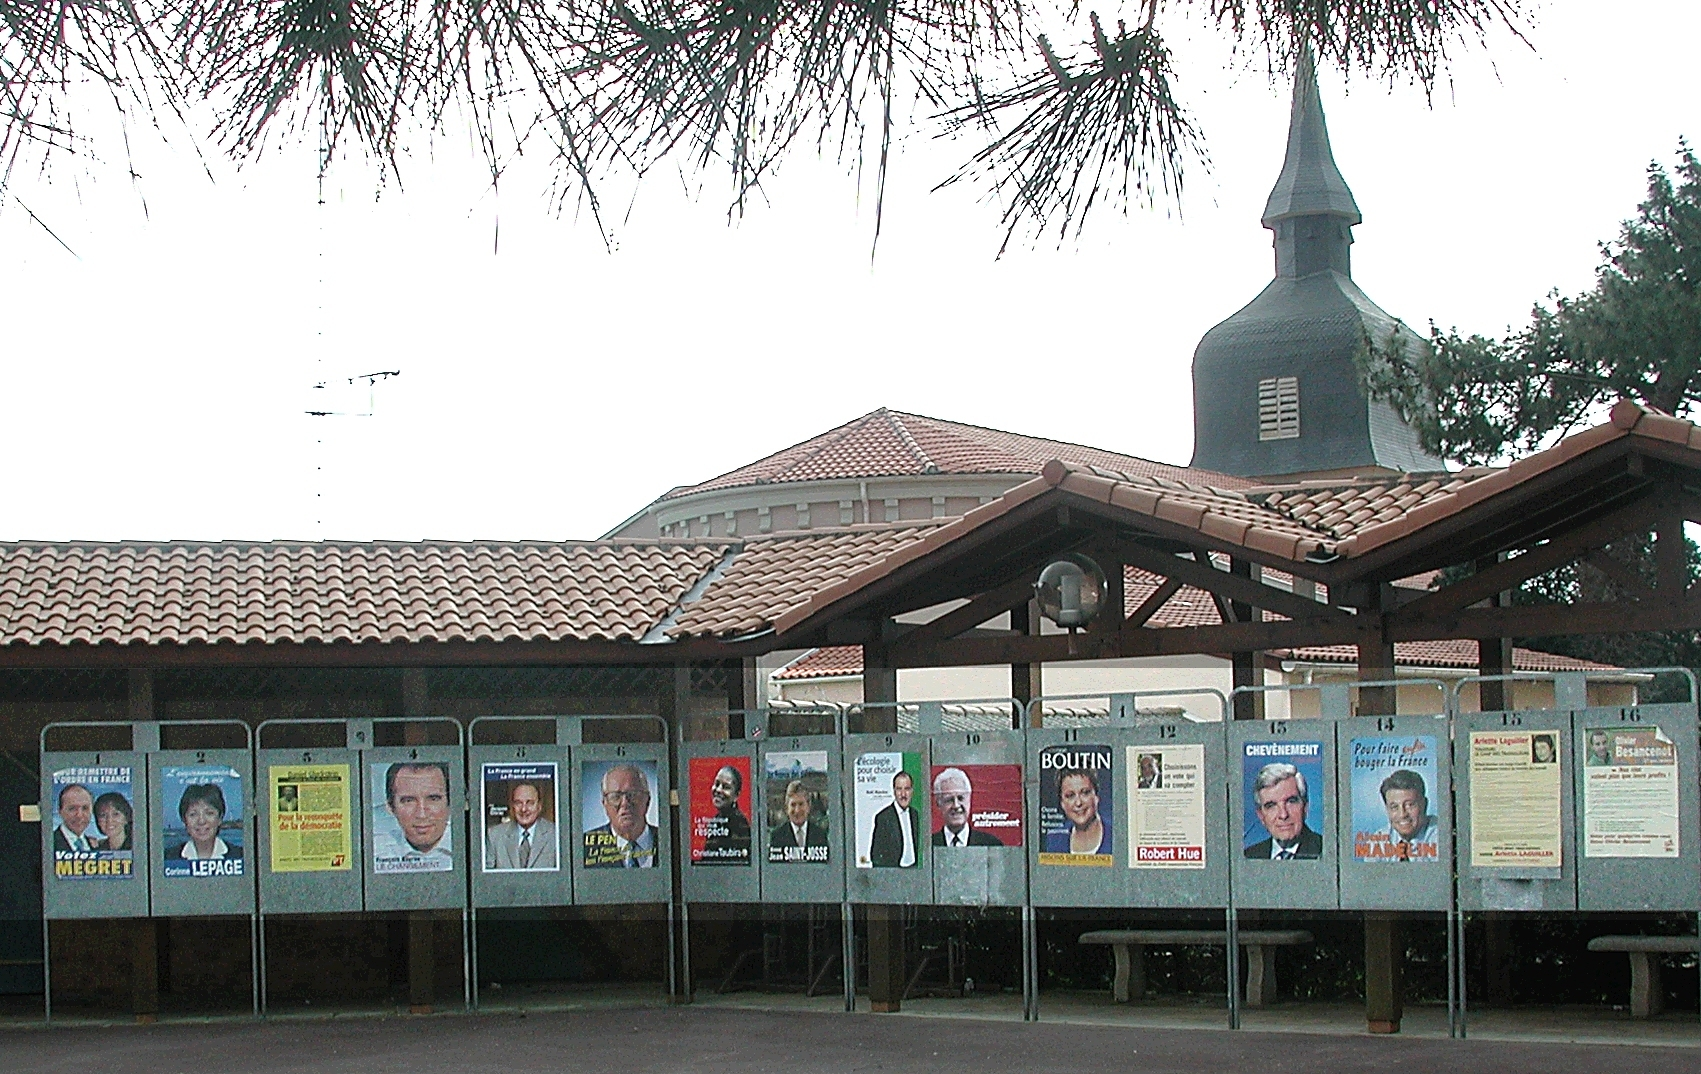 Posters for the 2002 Presidential elections